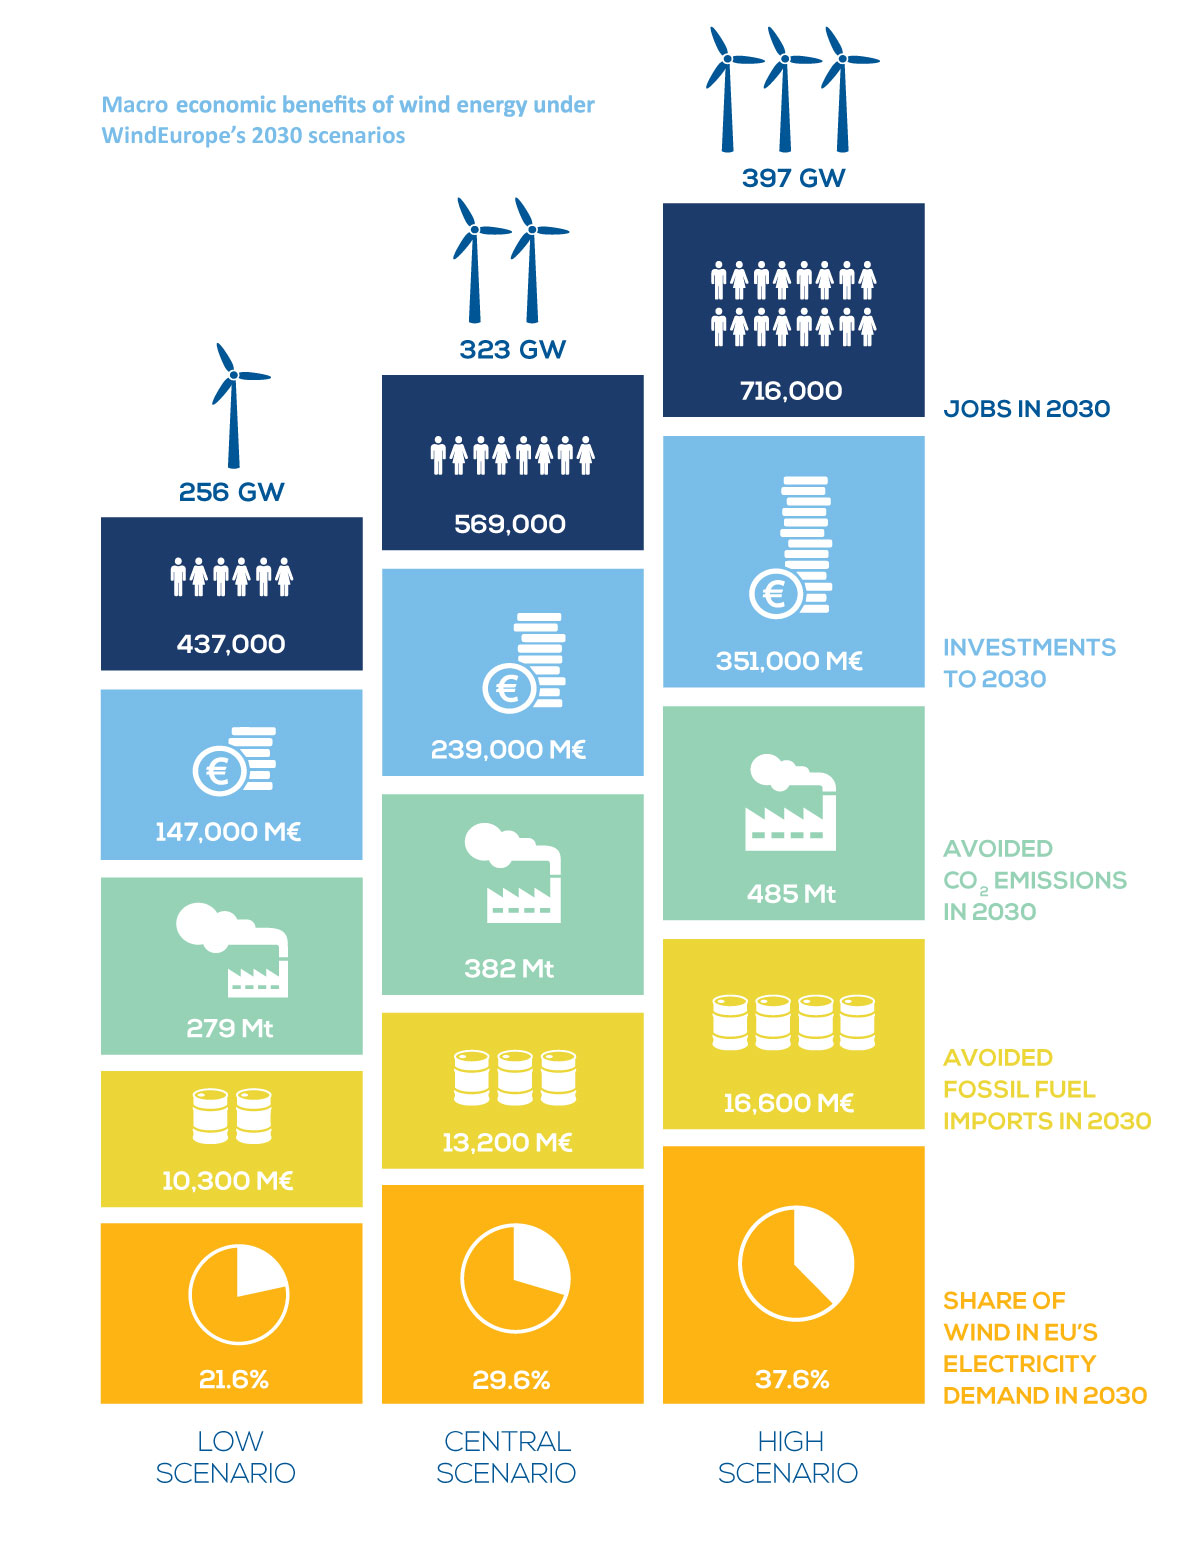 02 10 017 image 1 Wind energy in Europe Scenarios for 2030 infographic